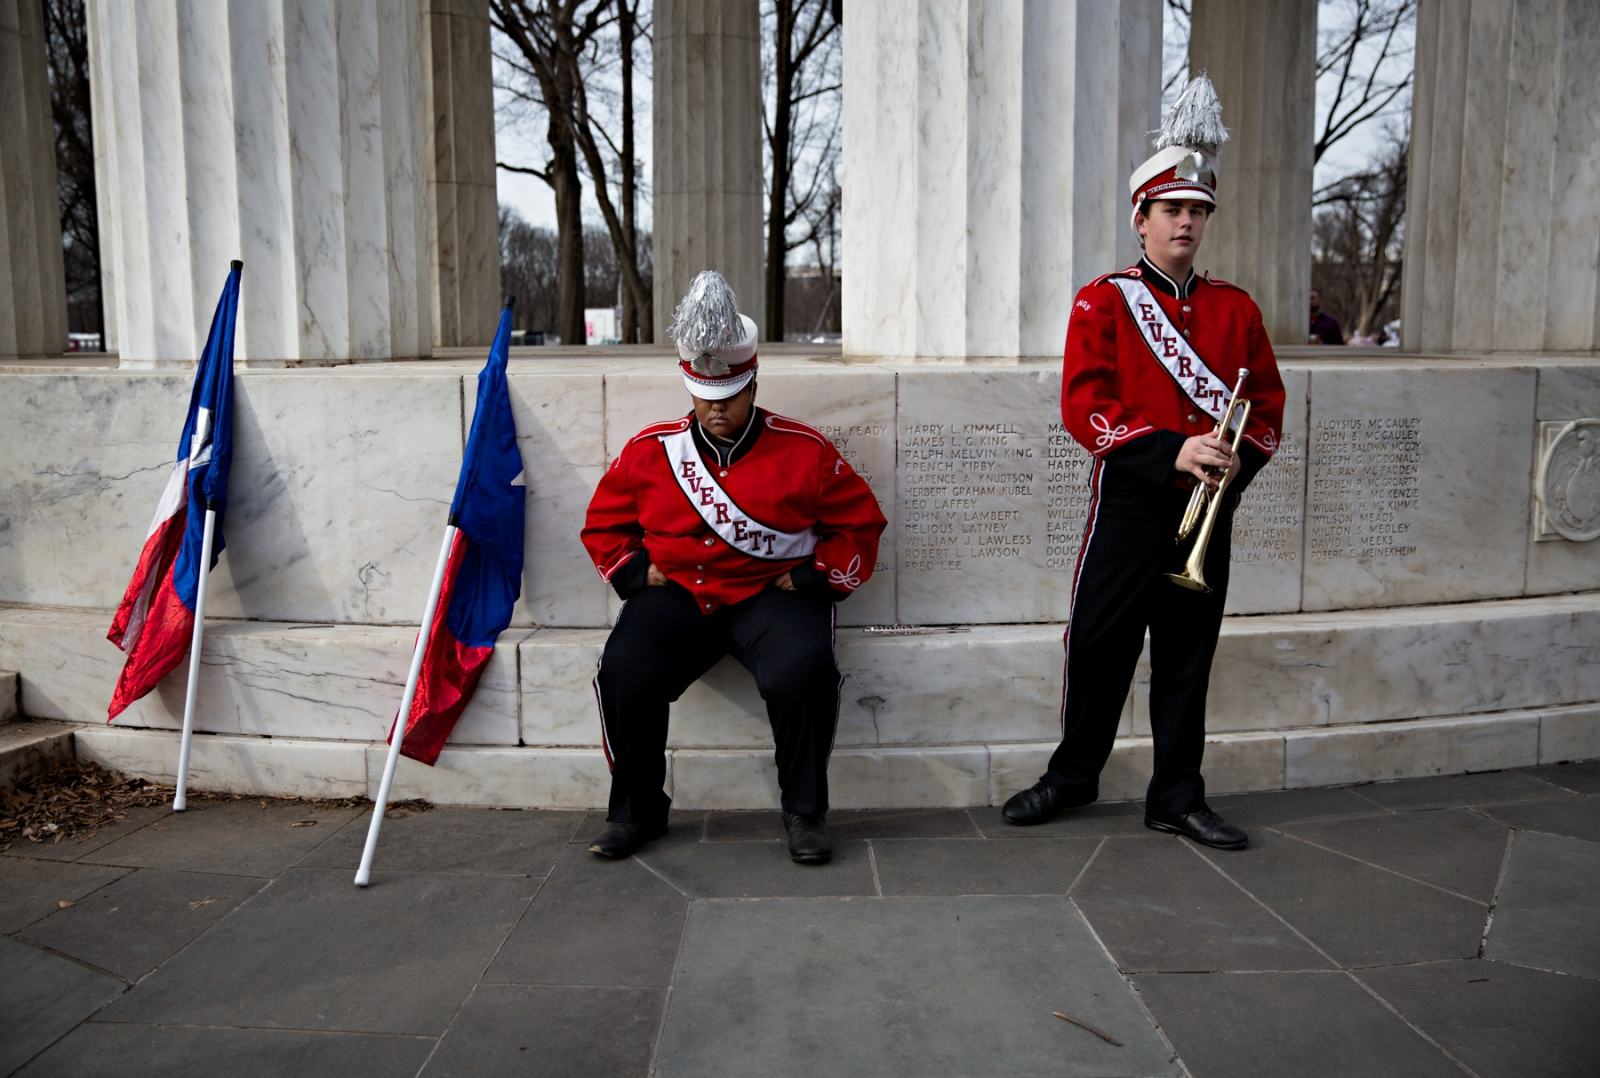 January 19, 2017 - Washington, DC, United States: Members of the Everett High School Band relax after having played in honor of the President Elect Donald Trump at the Lincoln Memorial. The day before Donald Trump's inauguration ceremony, Washington DC was filled with various ceremonies with marching bands from many different parts of the United States paying tribute to the newly elected President.